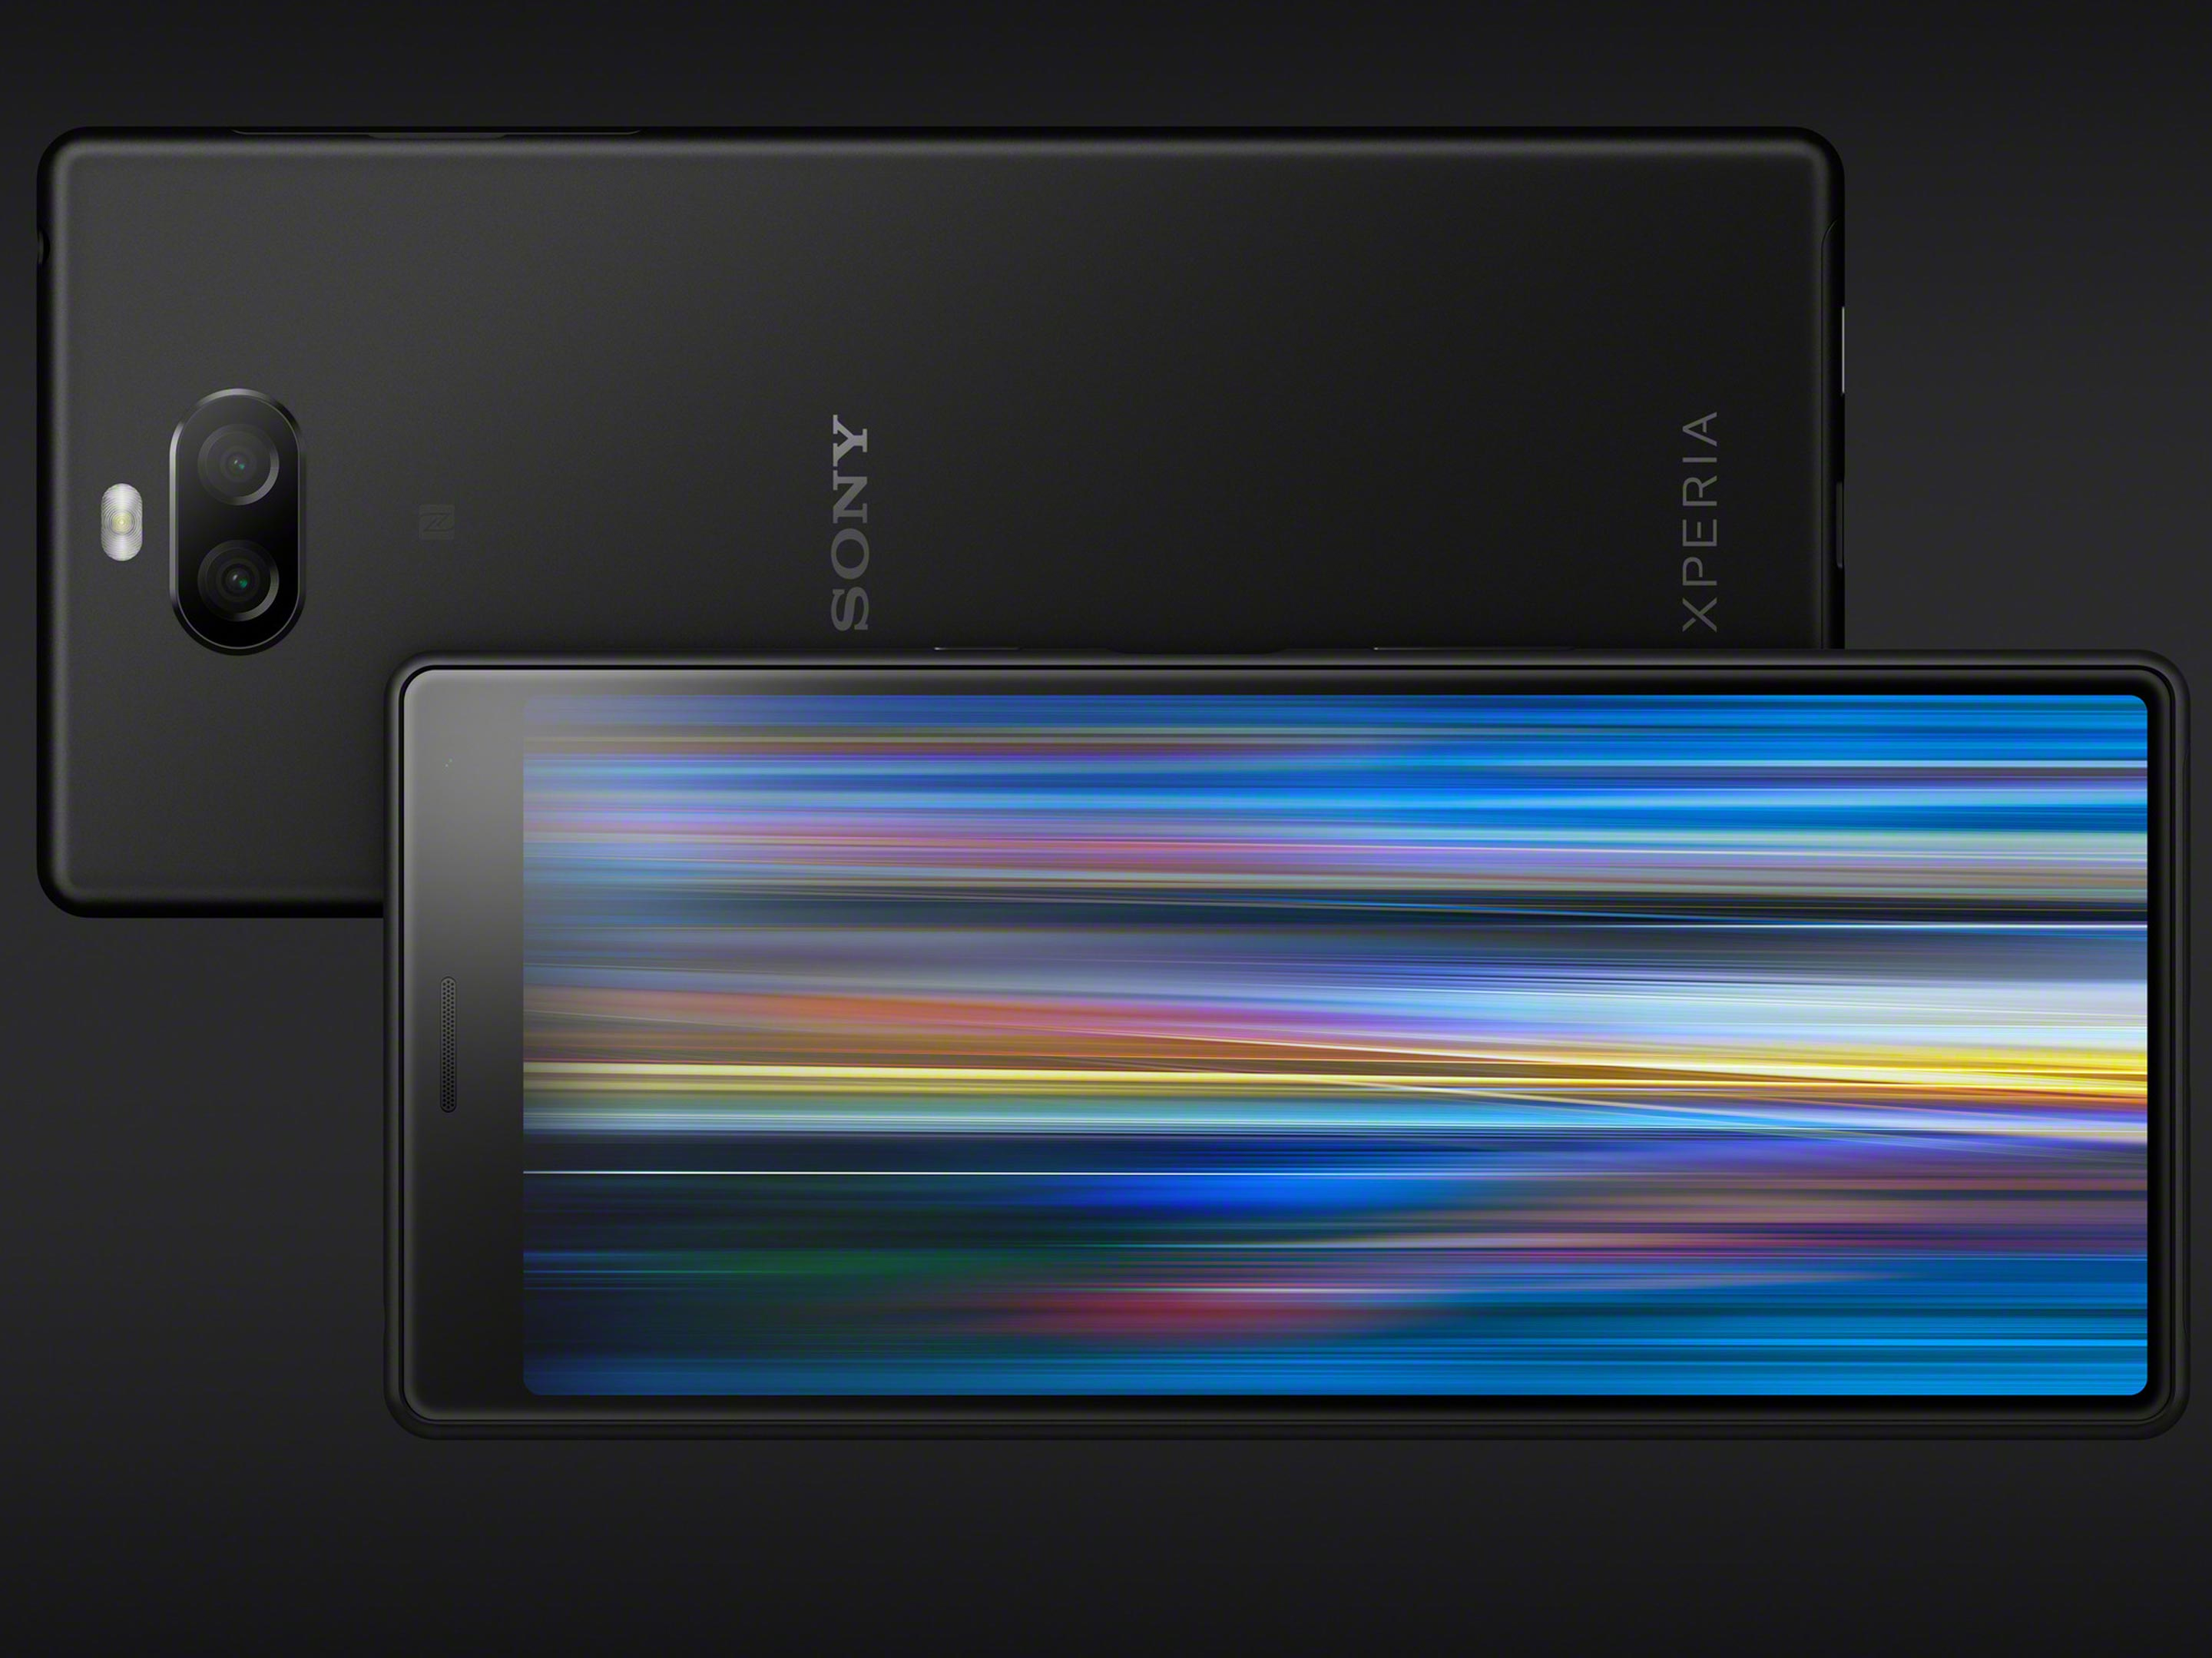 The Xperia 10 in black